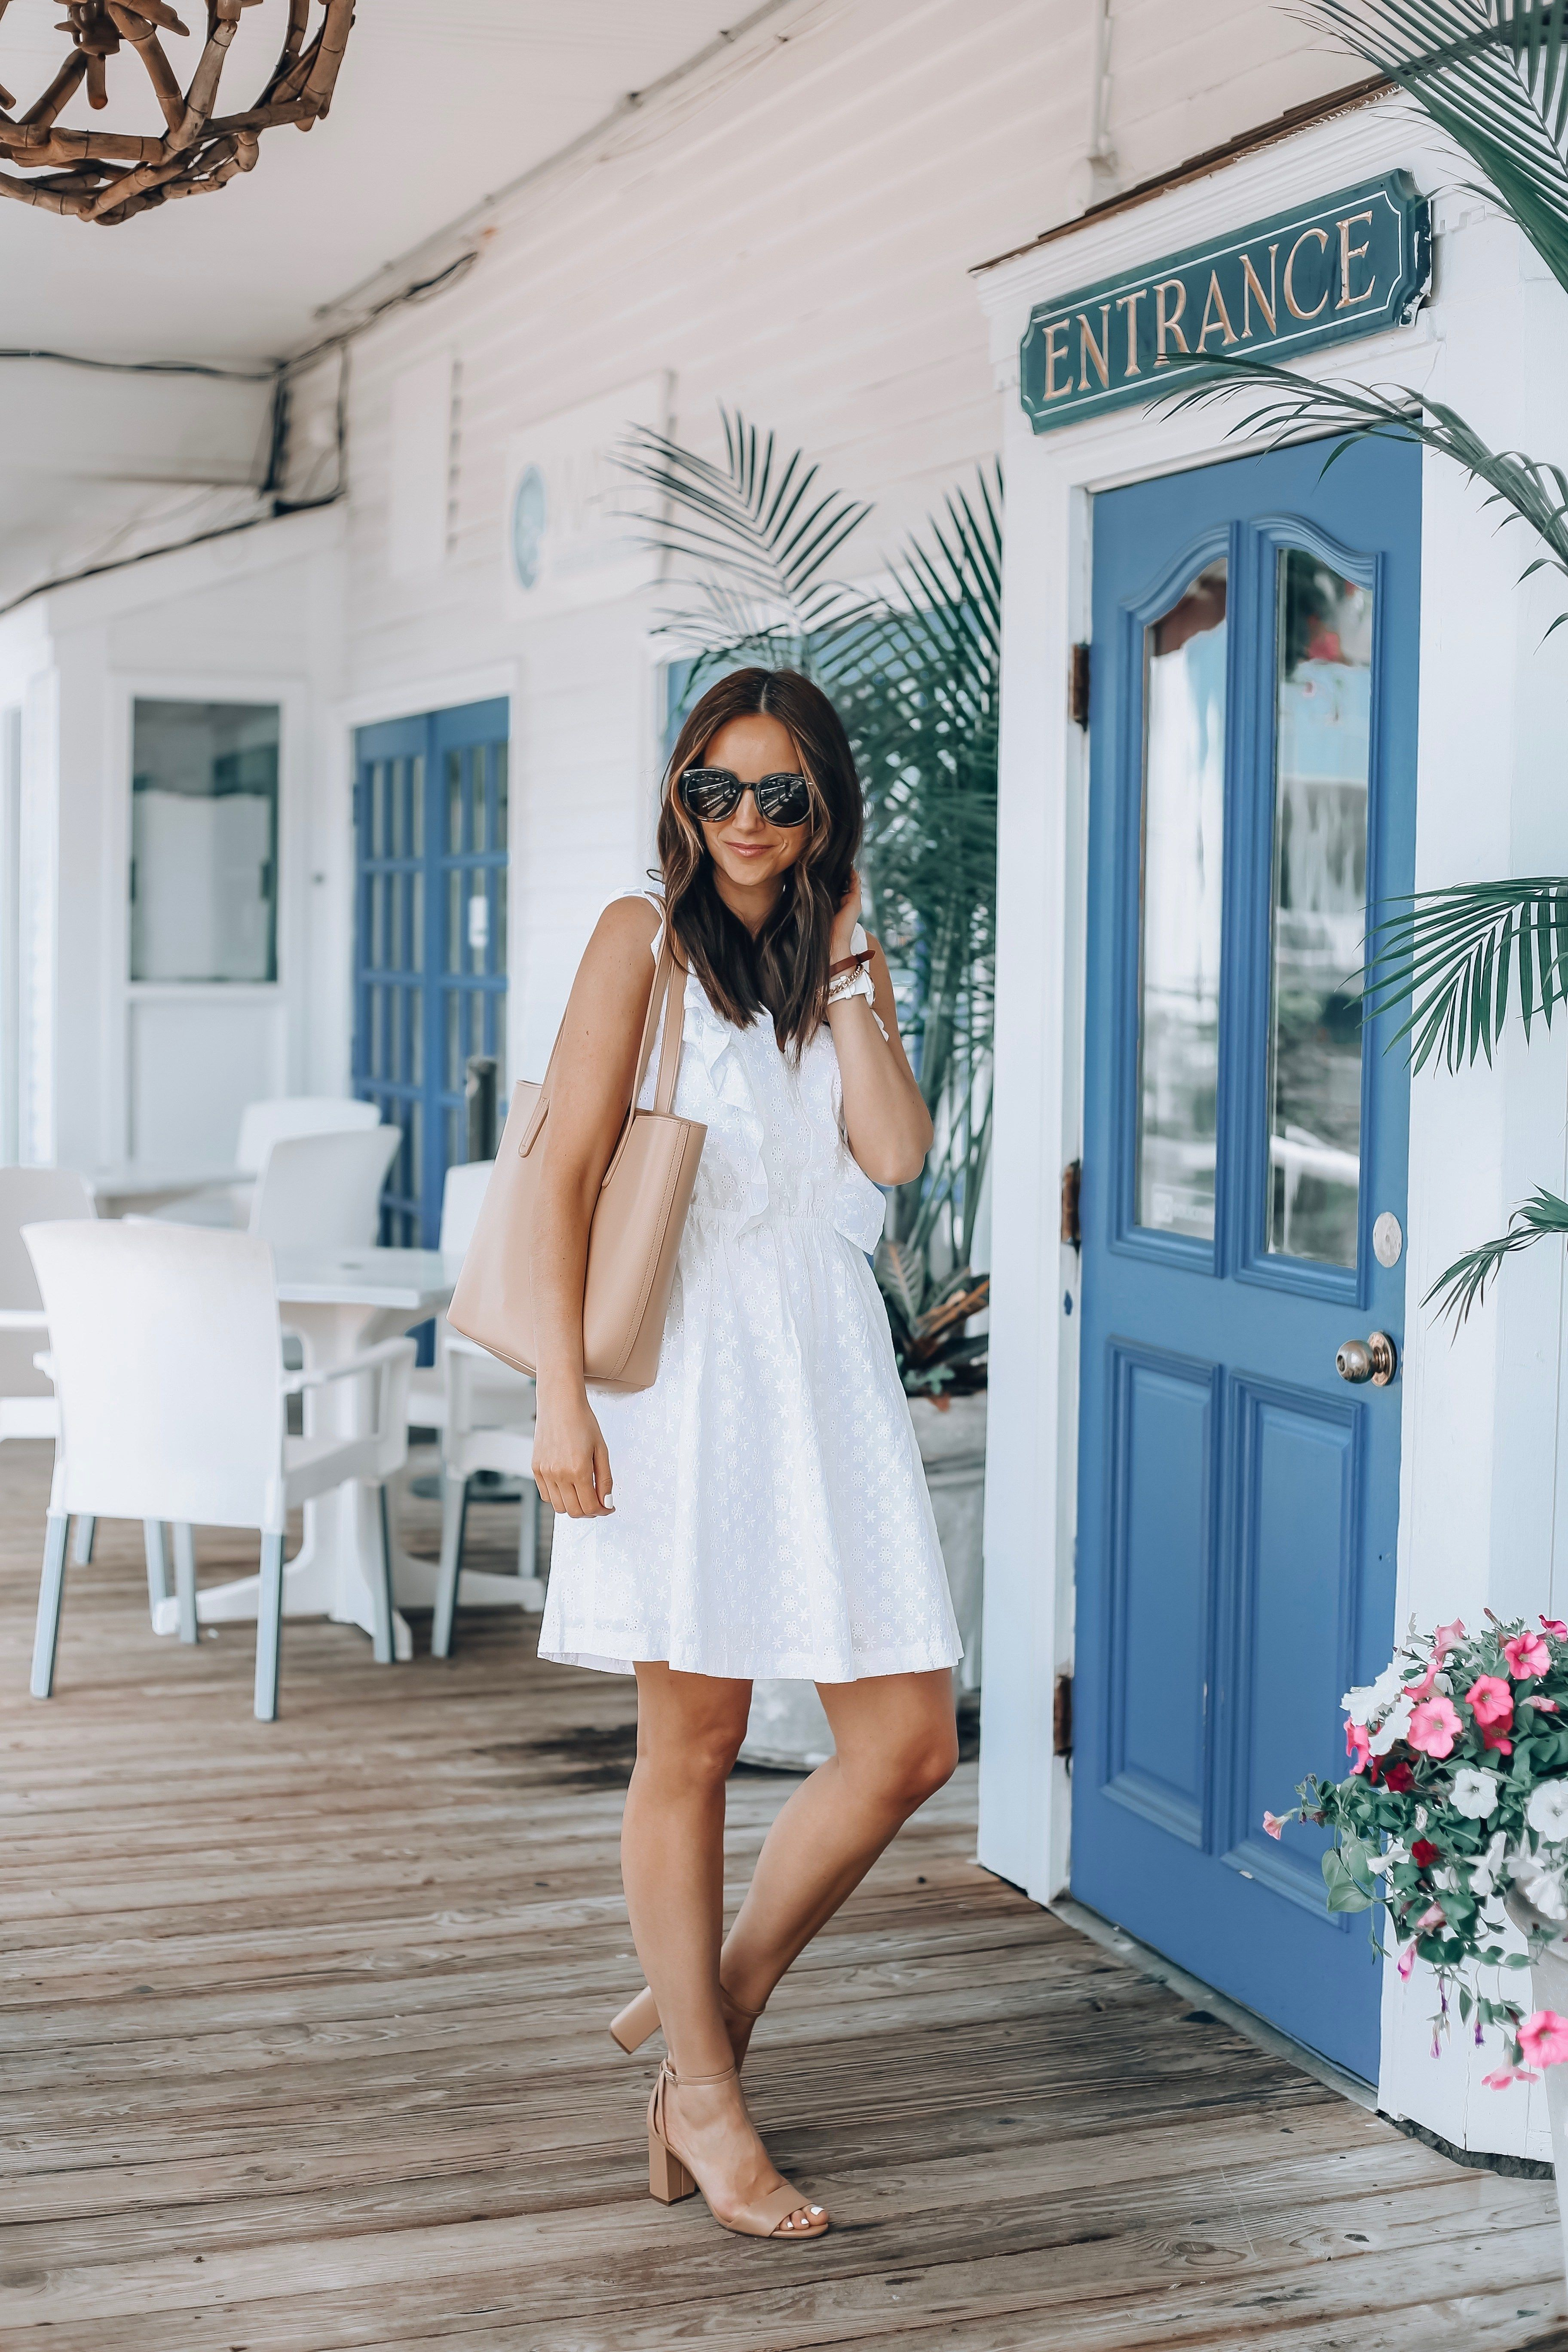 The Perfect White Dress For Mother S Day From Walmart White Dress Cute White Dress Outfit Inspiration Spring [ 5472 x 3648 Pixel ]